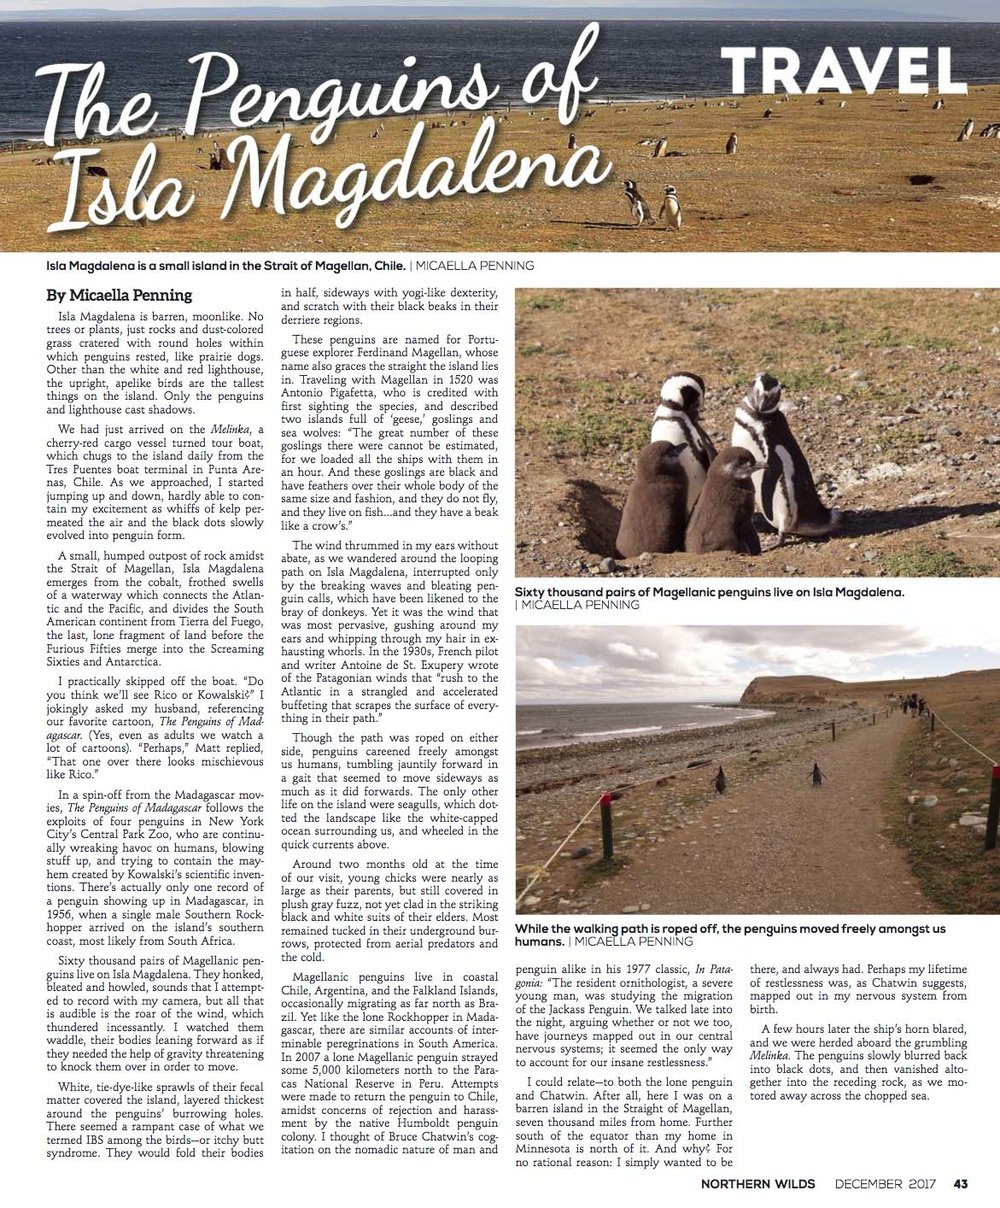 The Penguins of Isla Magdalena  in Northern Wilds